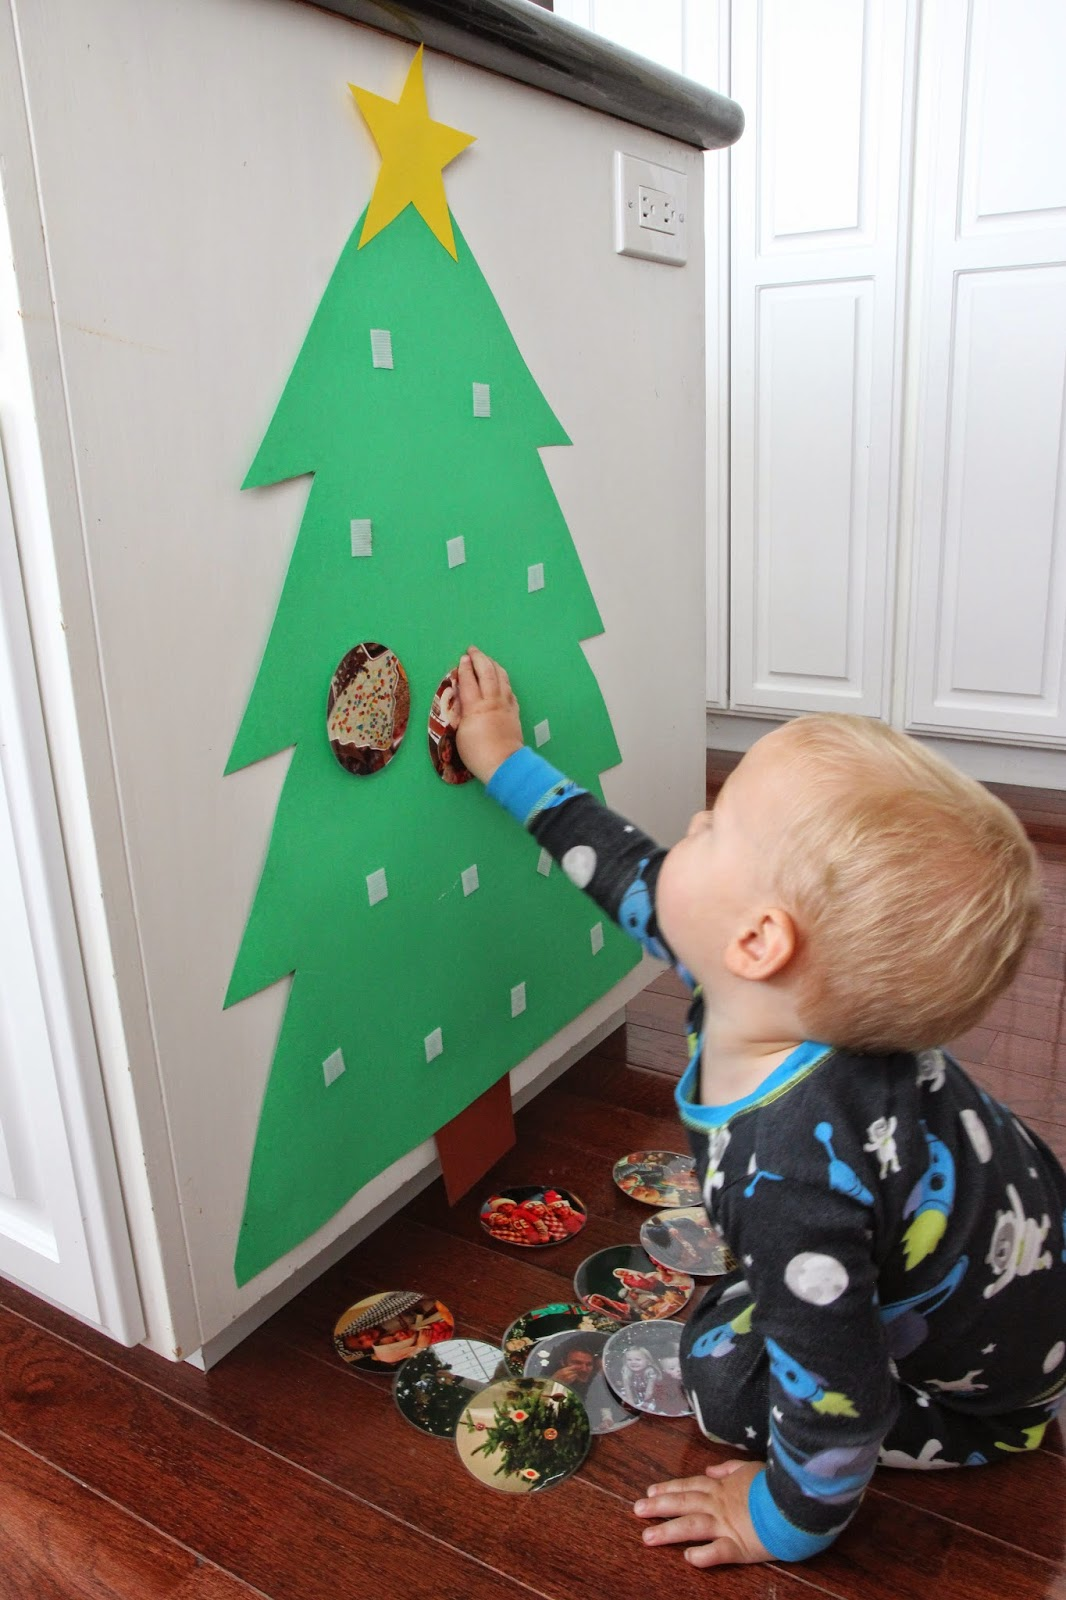 once the kids were done hanging all of the photo ornaments then they would pull them down again and put them back up in different places